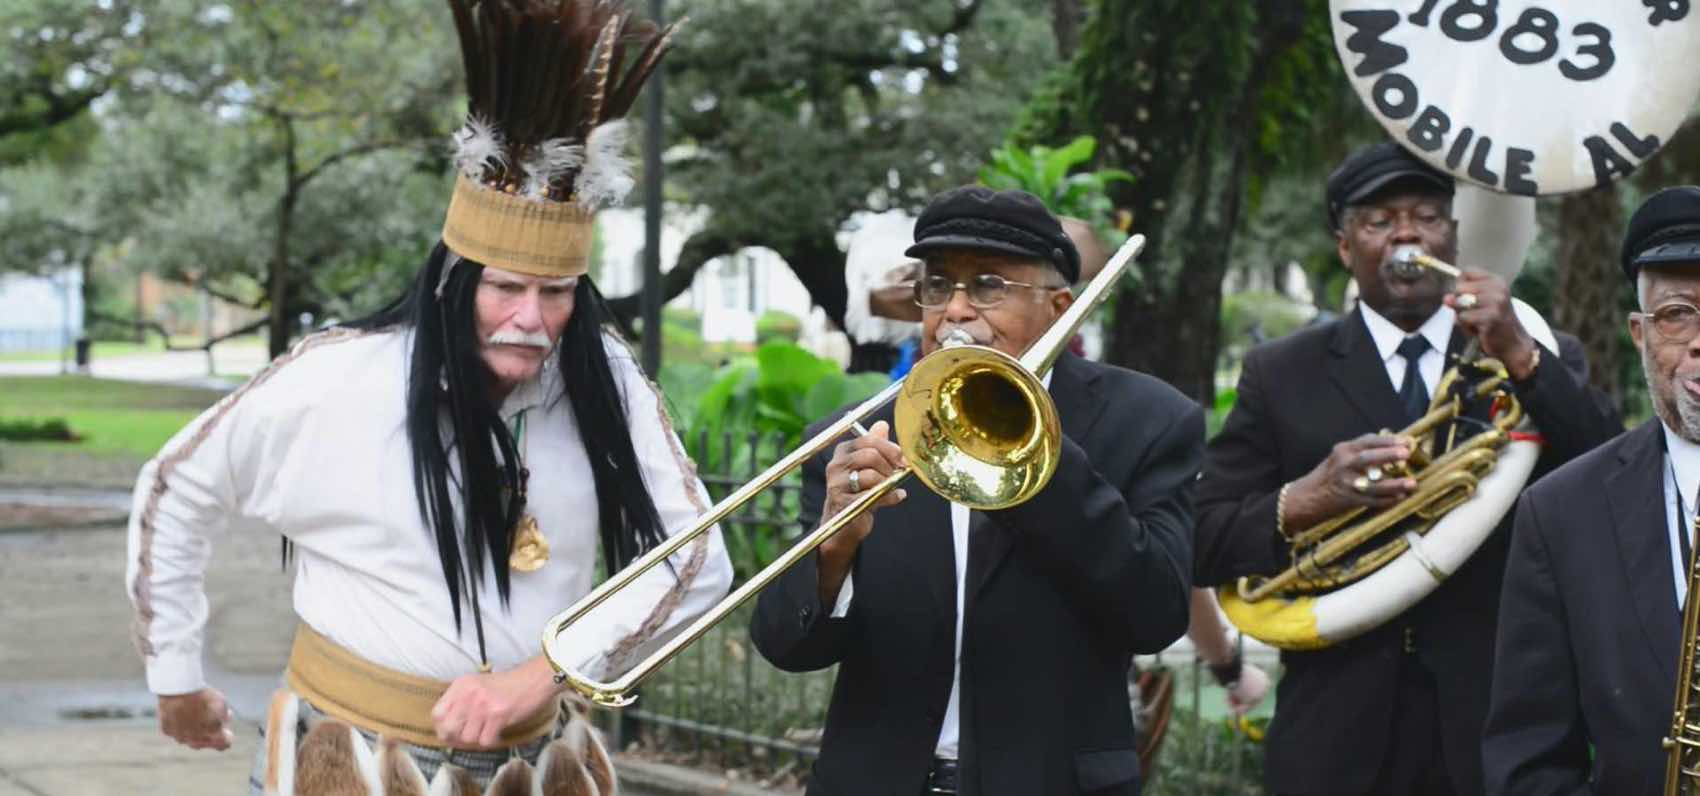 Music: Mardi Gras in Alabama means music by brass bands